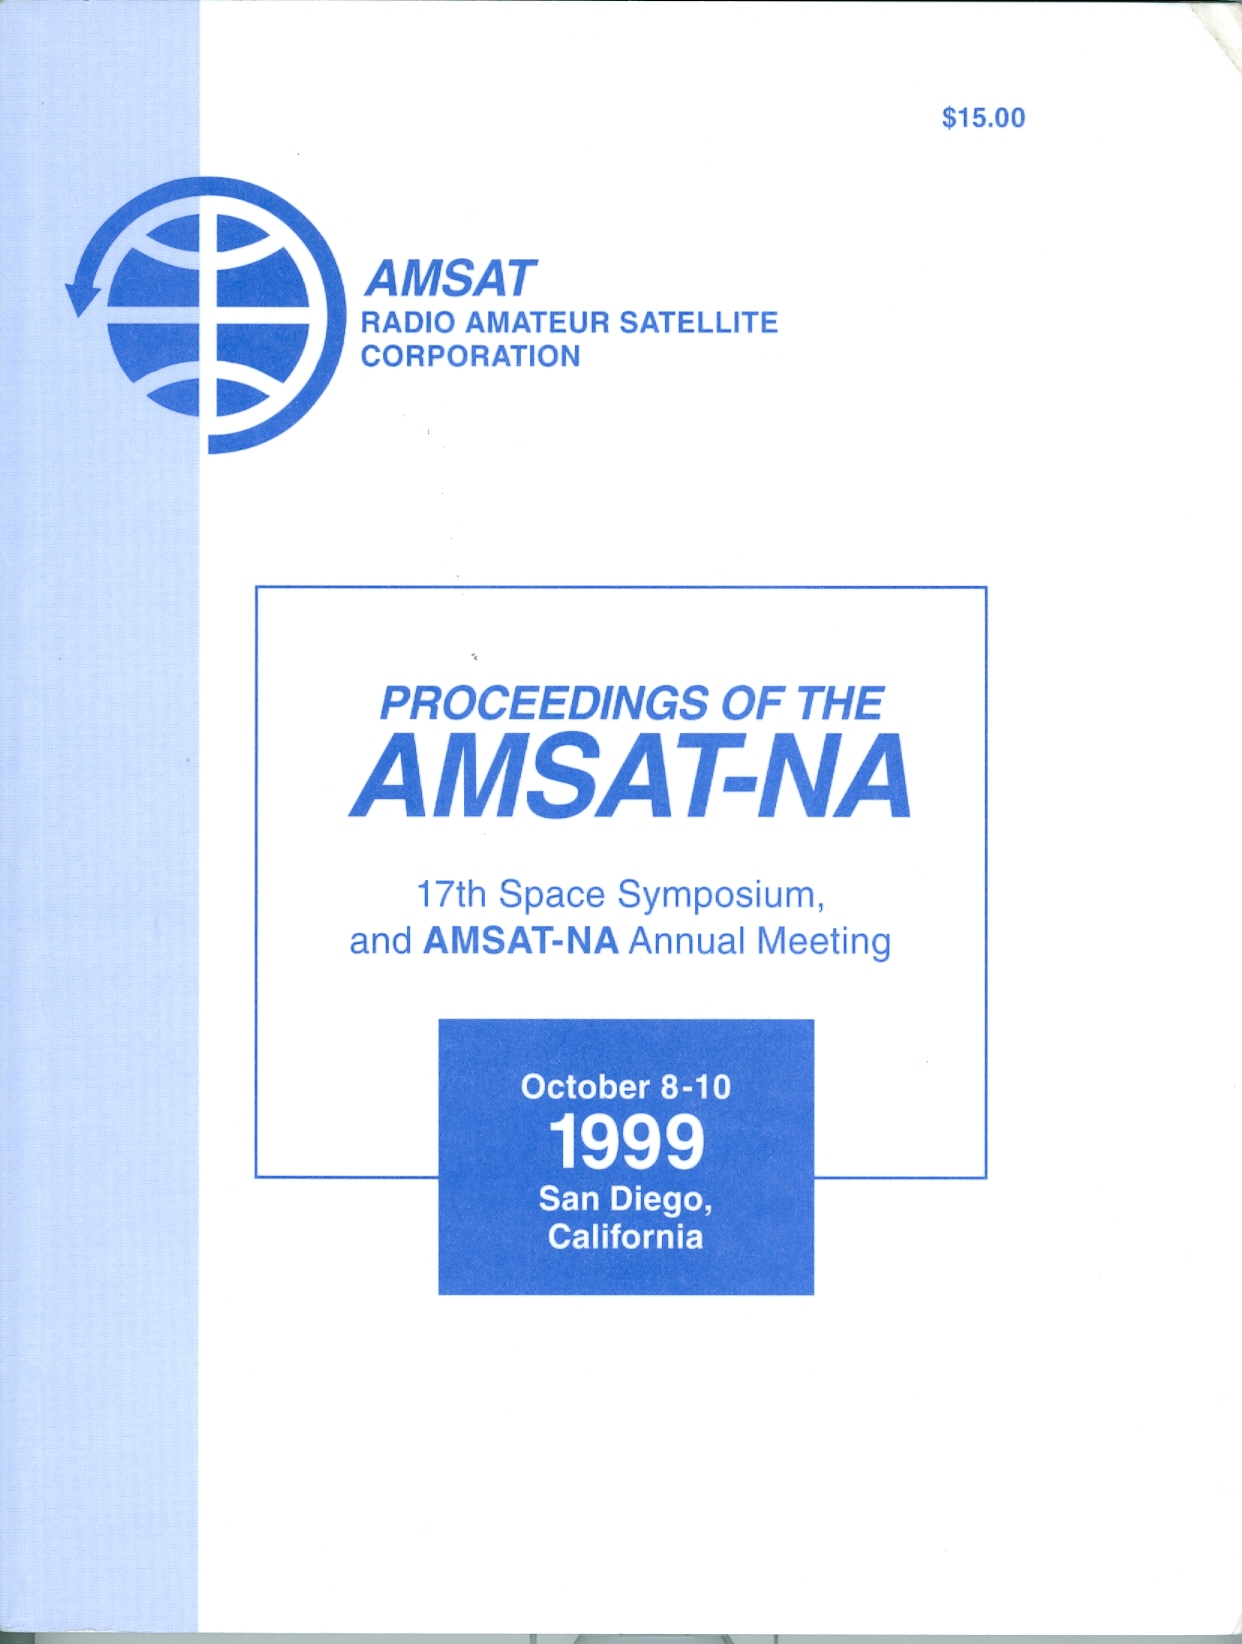 Proceedings of the AMSAT-NA 17th Space Symposium and AMSAT Annual Meeting